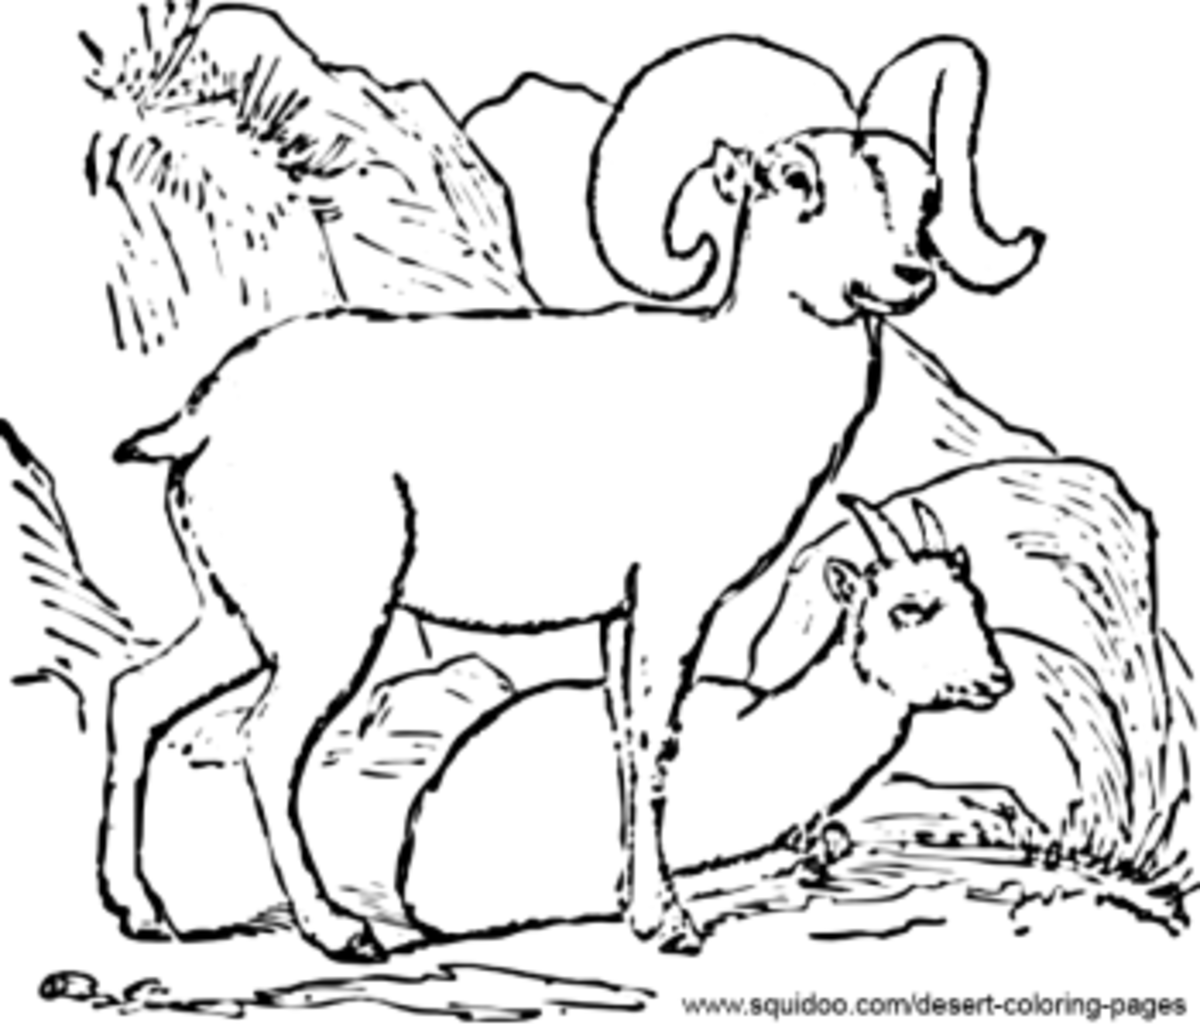 Long horn sheep coloring pages ~ Desert Coloring Pages